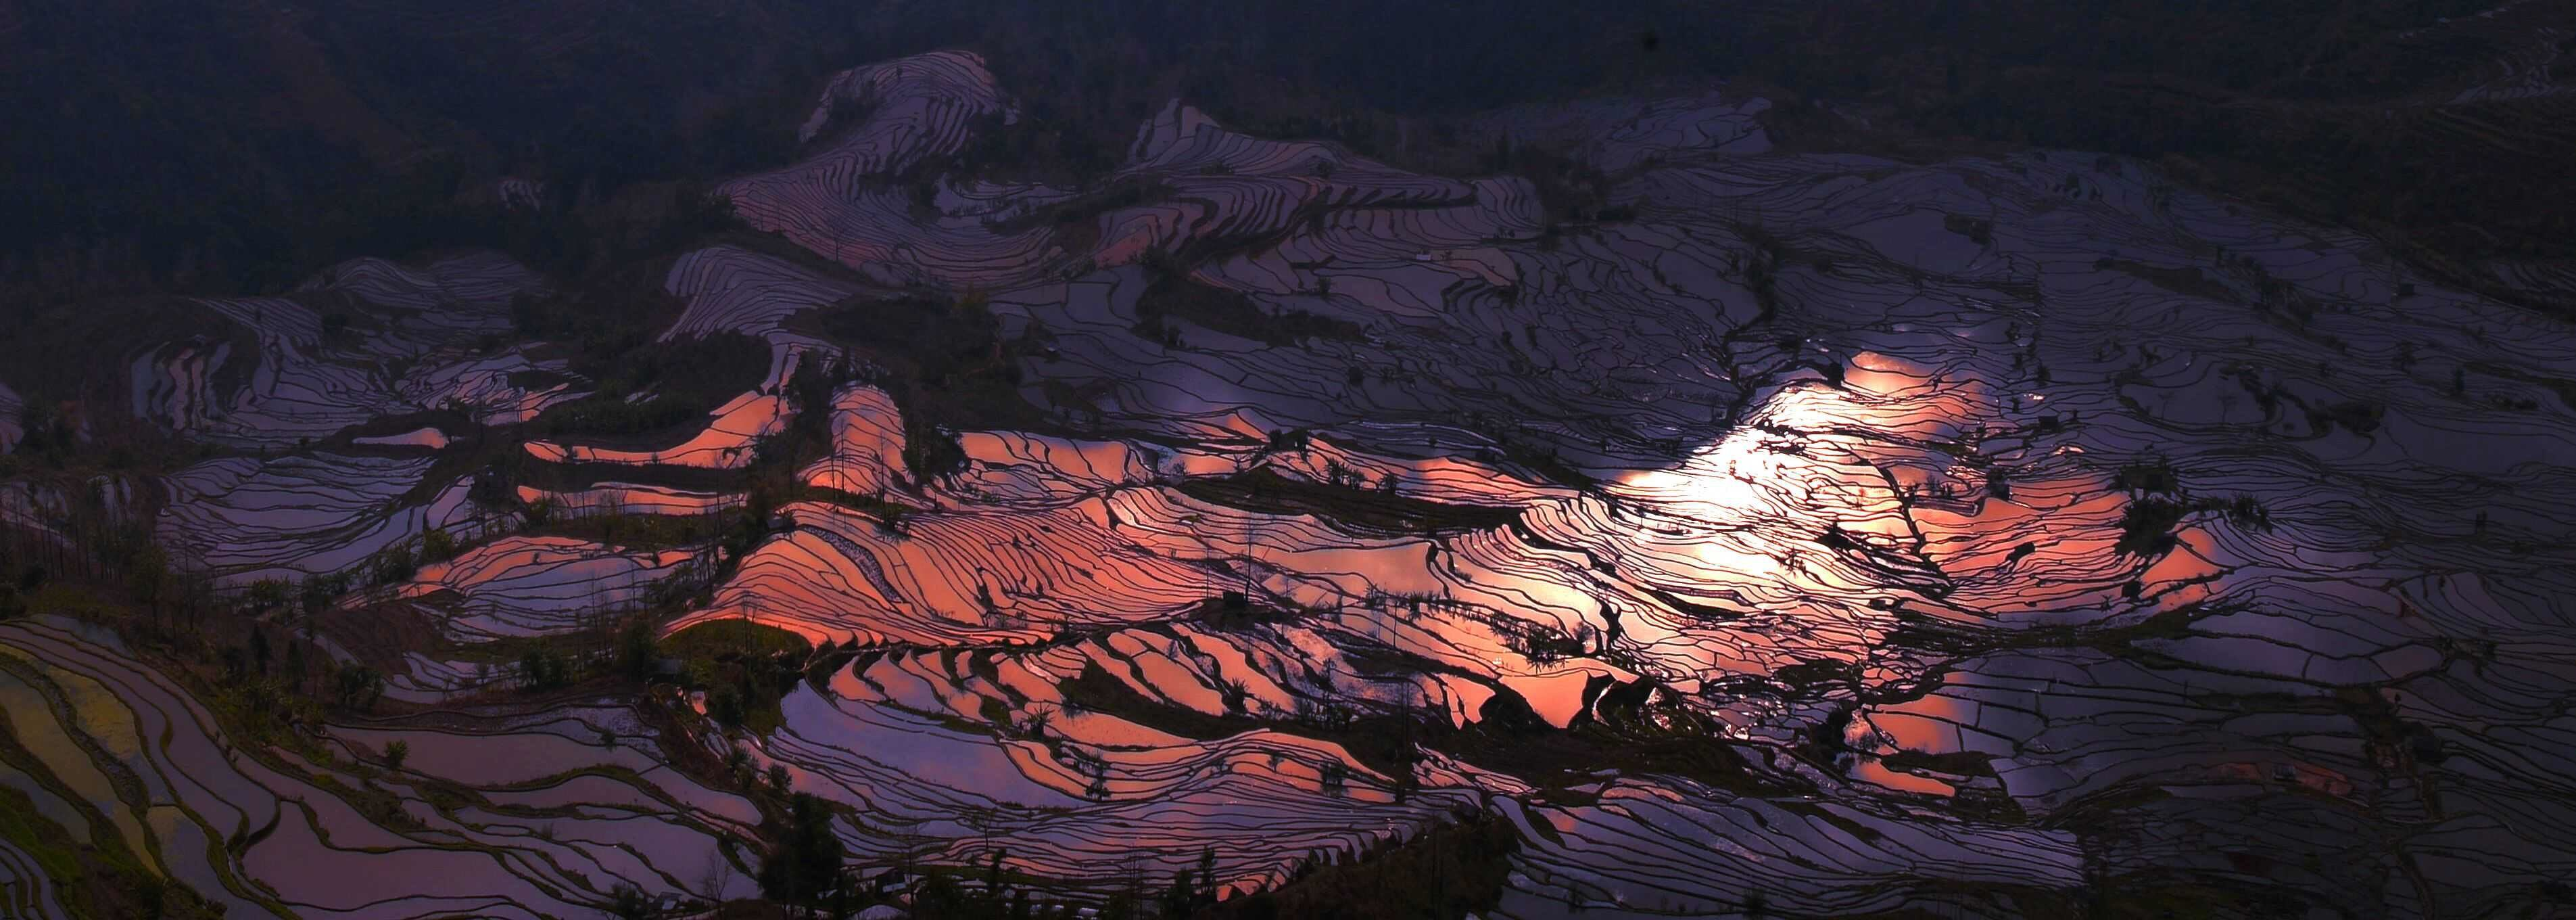 Yuanyang Rice Terrace Field